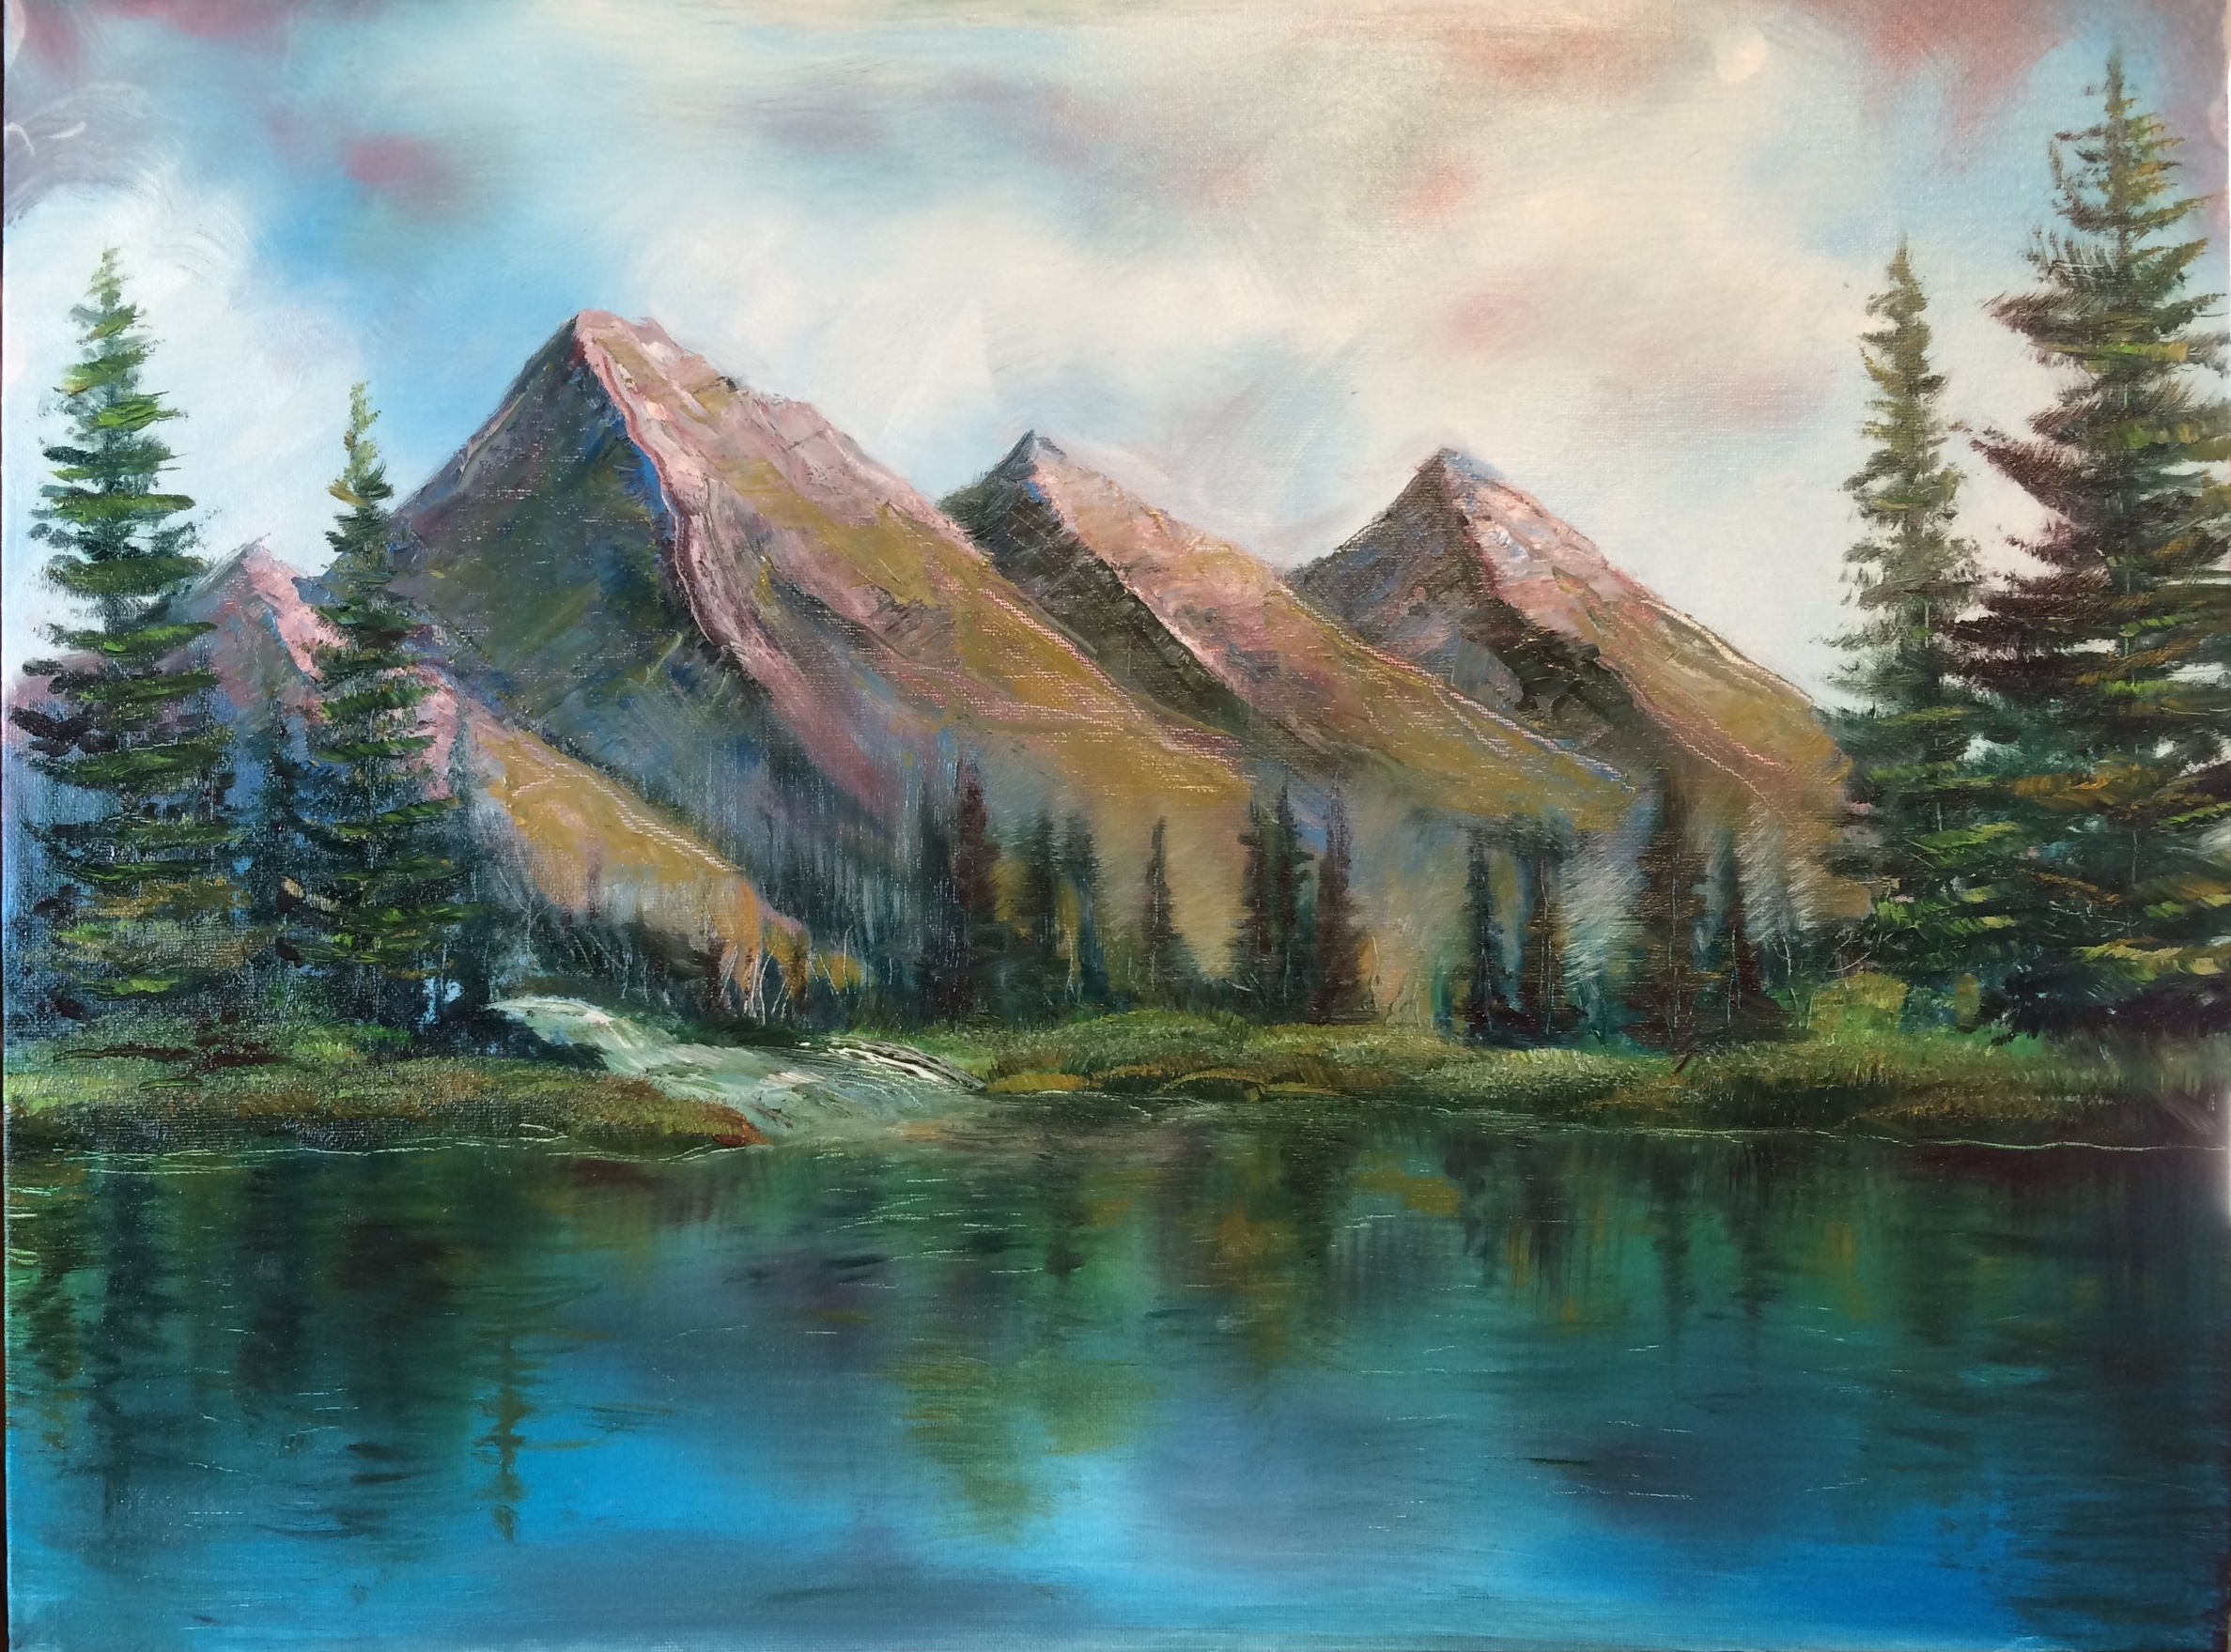 My son Ben and I have painted a painting with Bob Ross from You Tube which was a great learning experience.